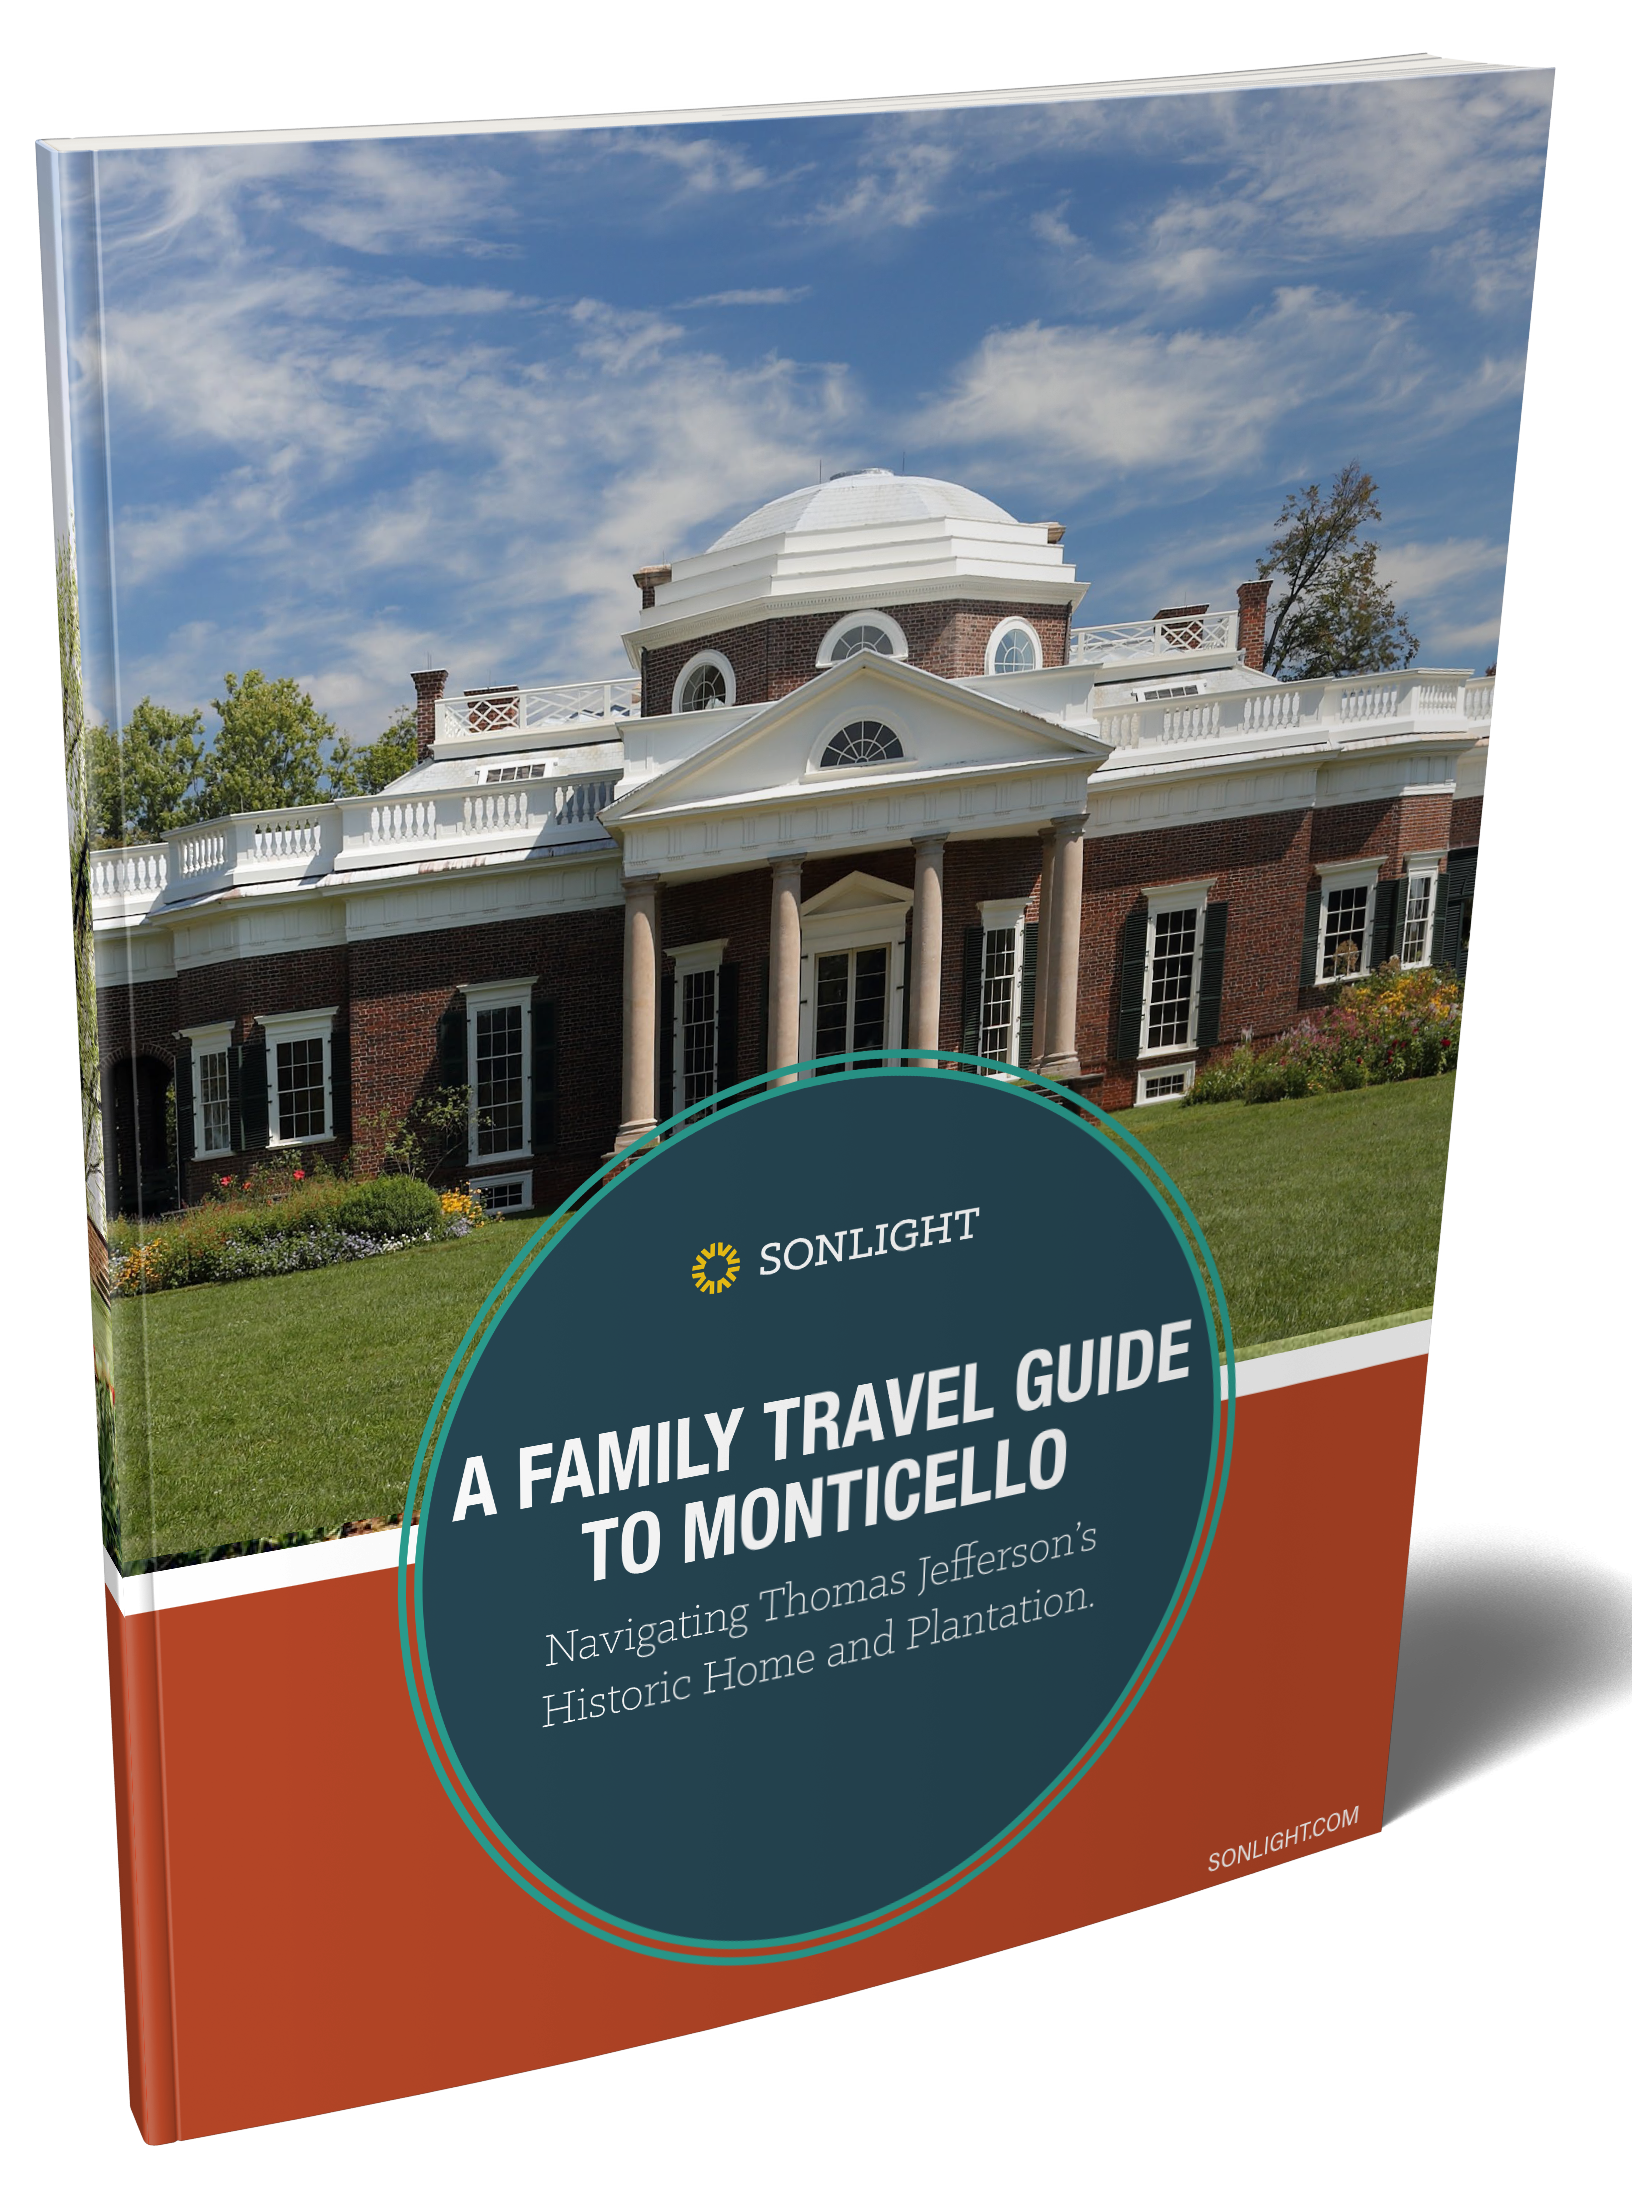 Download Sonlight's Free Family Travel Guide to Thomas Jefferson's Monticello